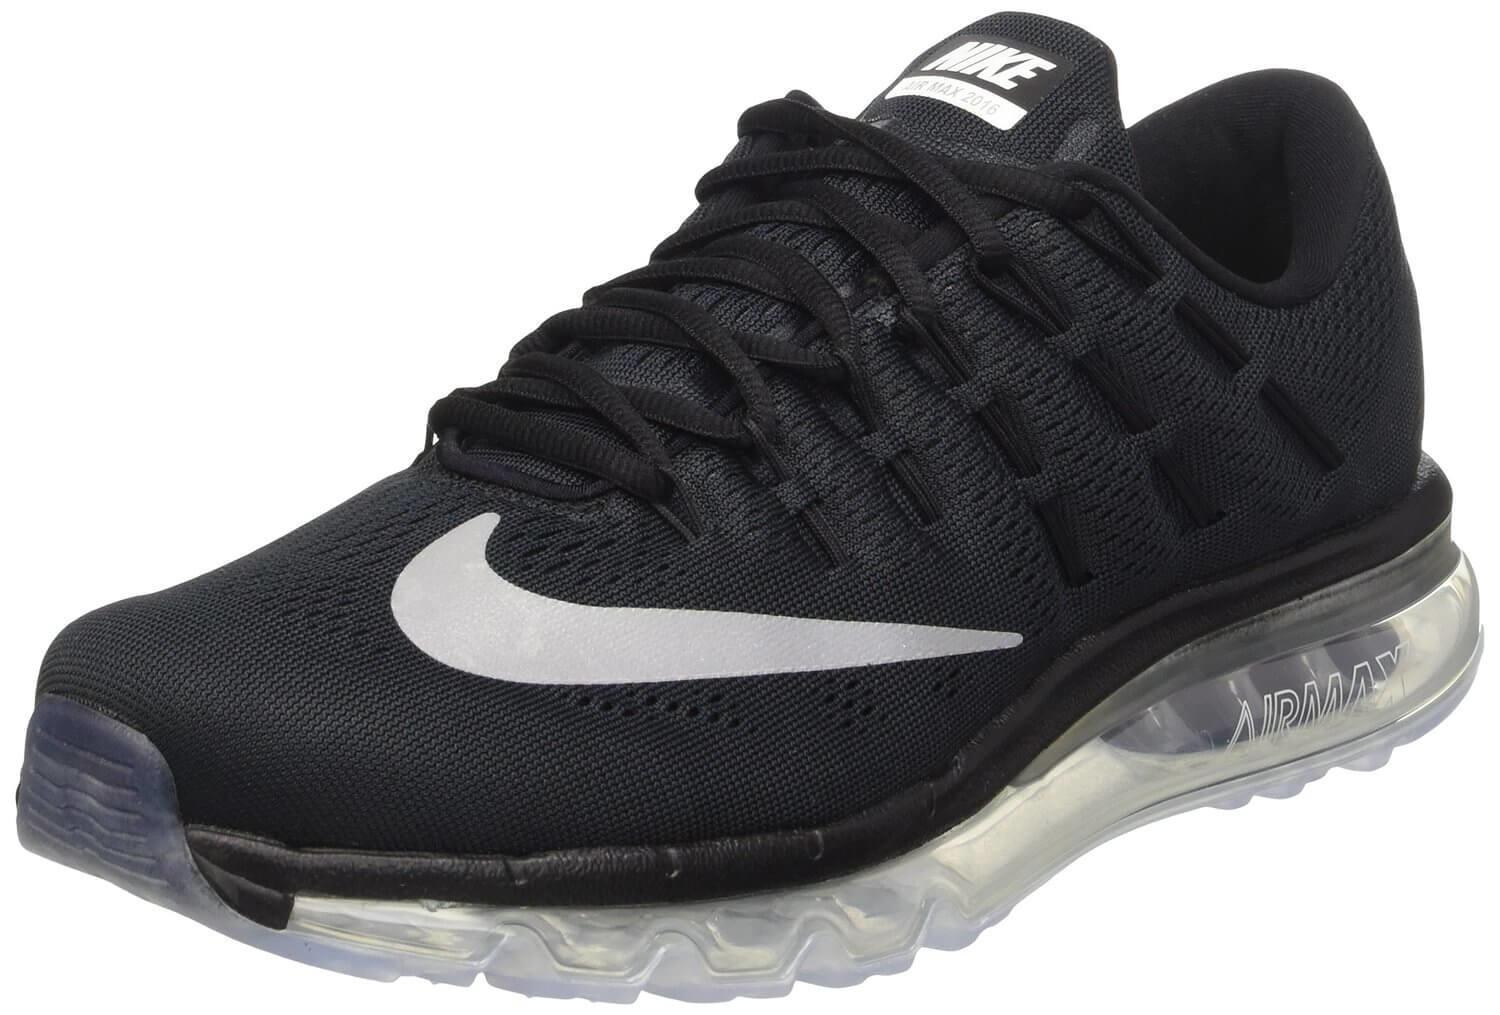 moins cher 07ffc 38cc1 Nike Air Max 2016 Reviewed & Rated for Quality